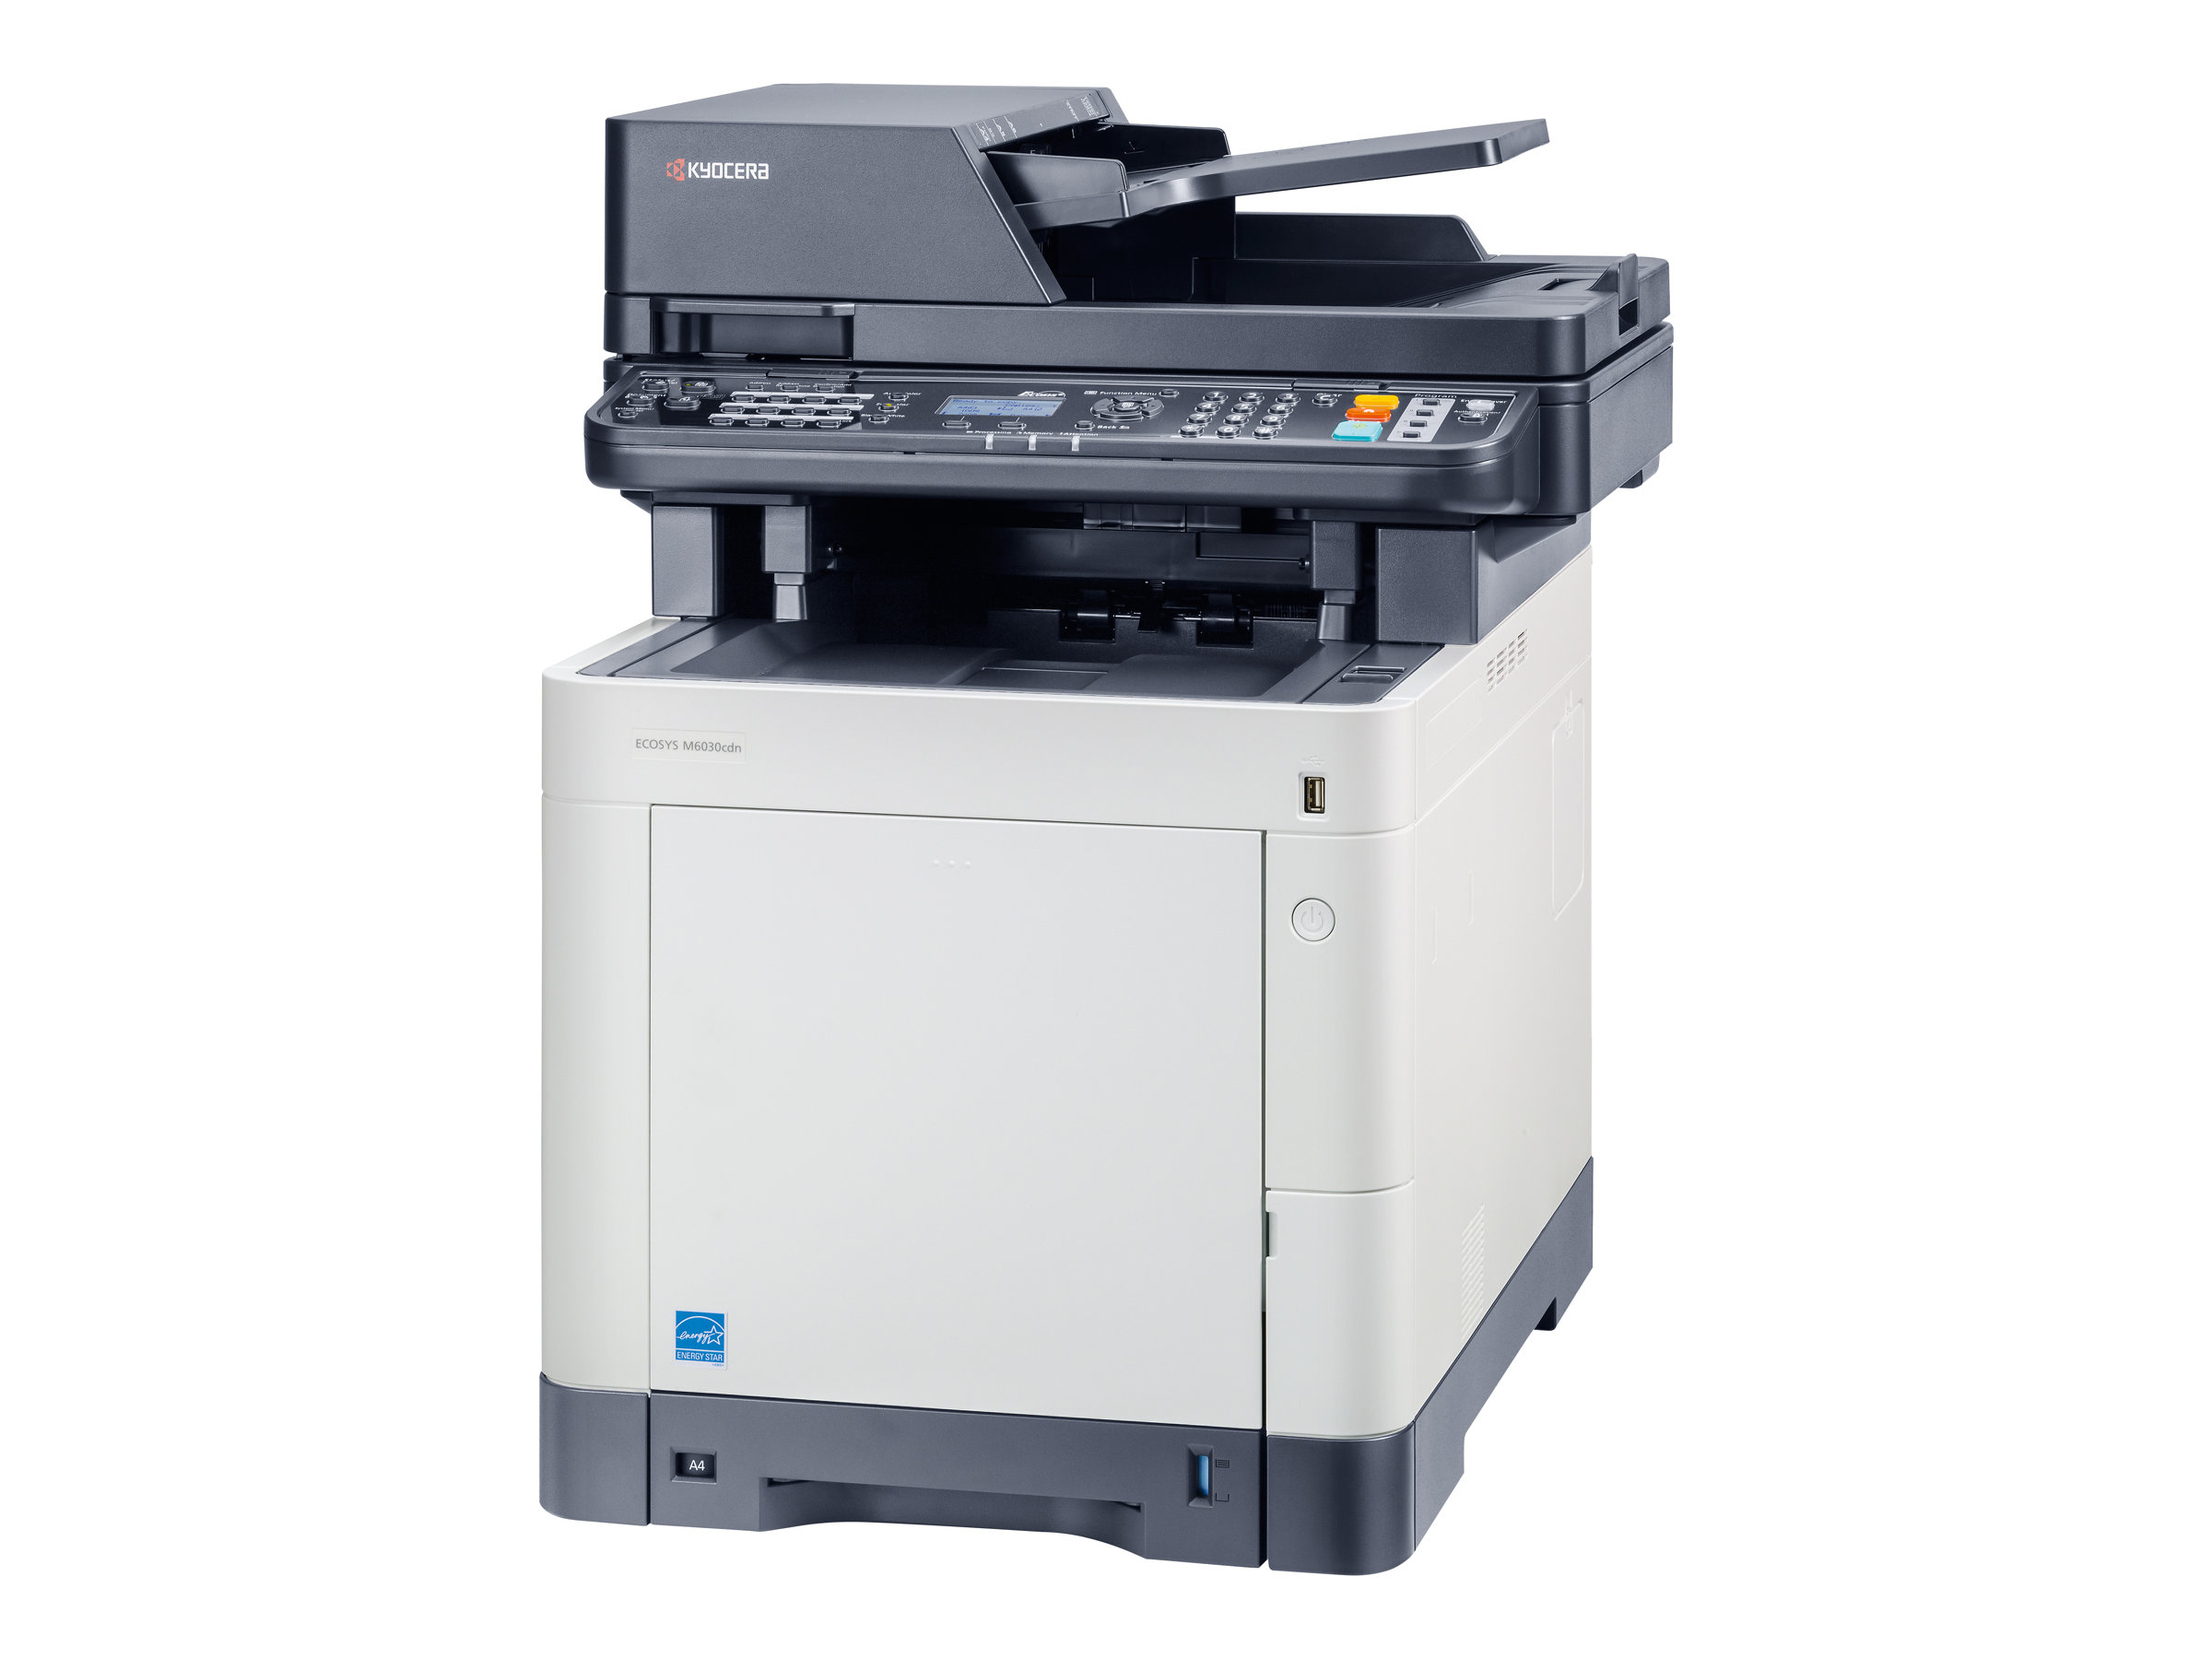 Kyocera ECOSYS M6030cdn - Multifunktionsdrucker - Farbe - Laser - Legal (216 x 356 mm)/A4 (210 x 297 mm) (Original) - A4/Legal (Medien)